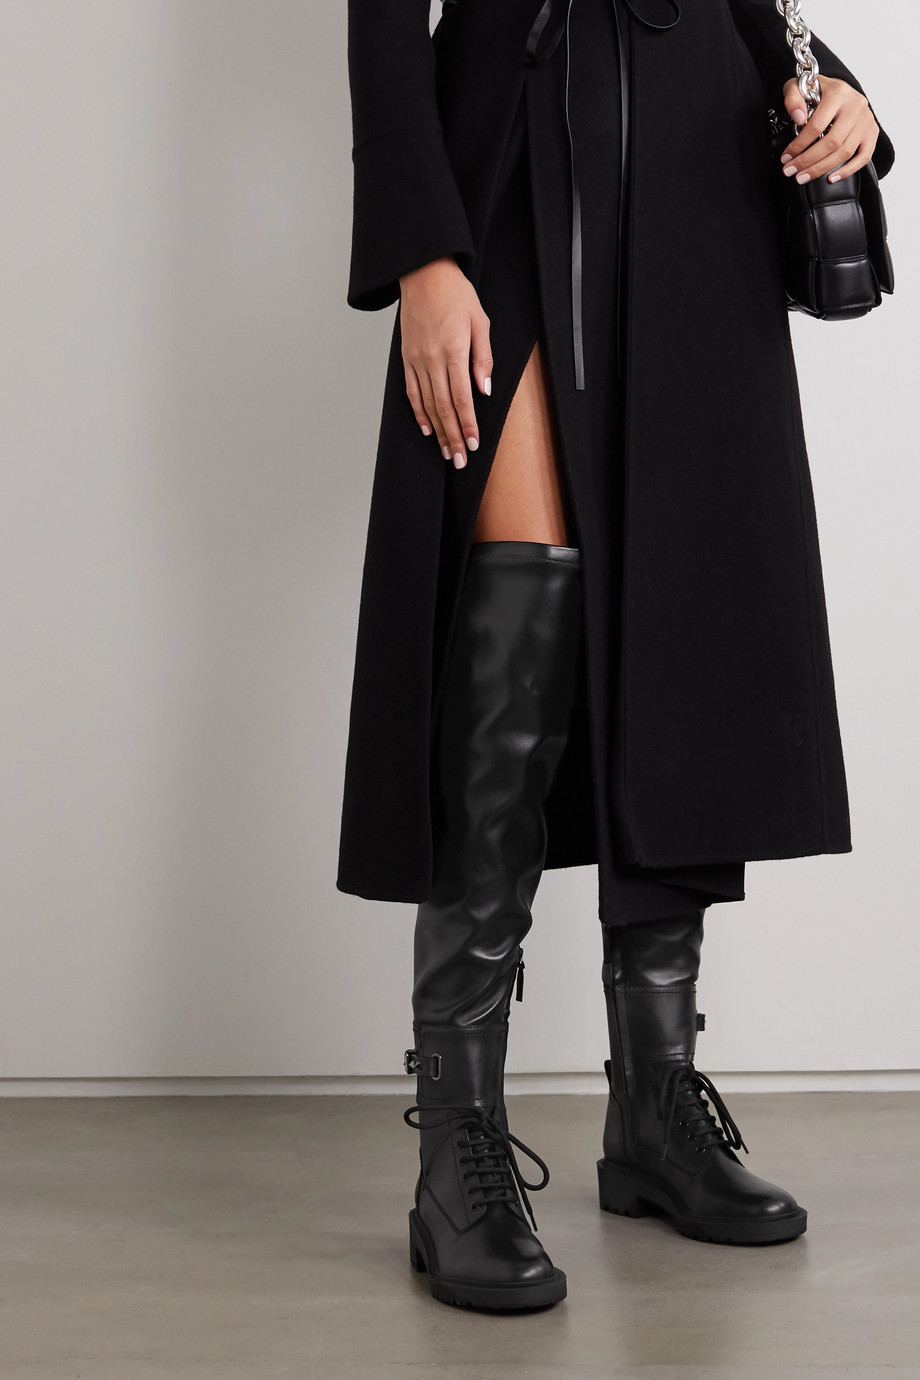 Valentino Valentino Garavani Rockstud 40 leather over-the-knee boots